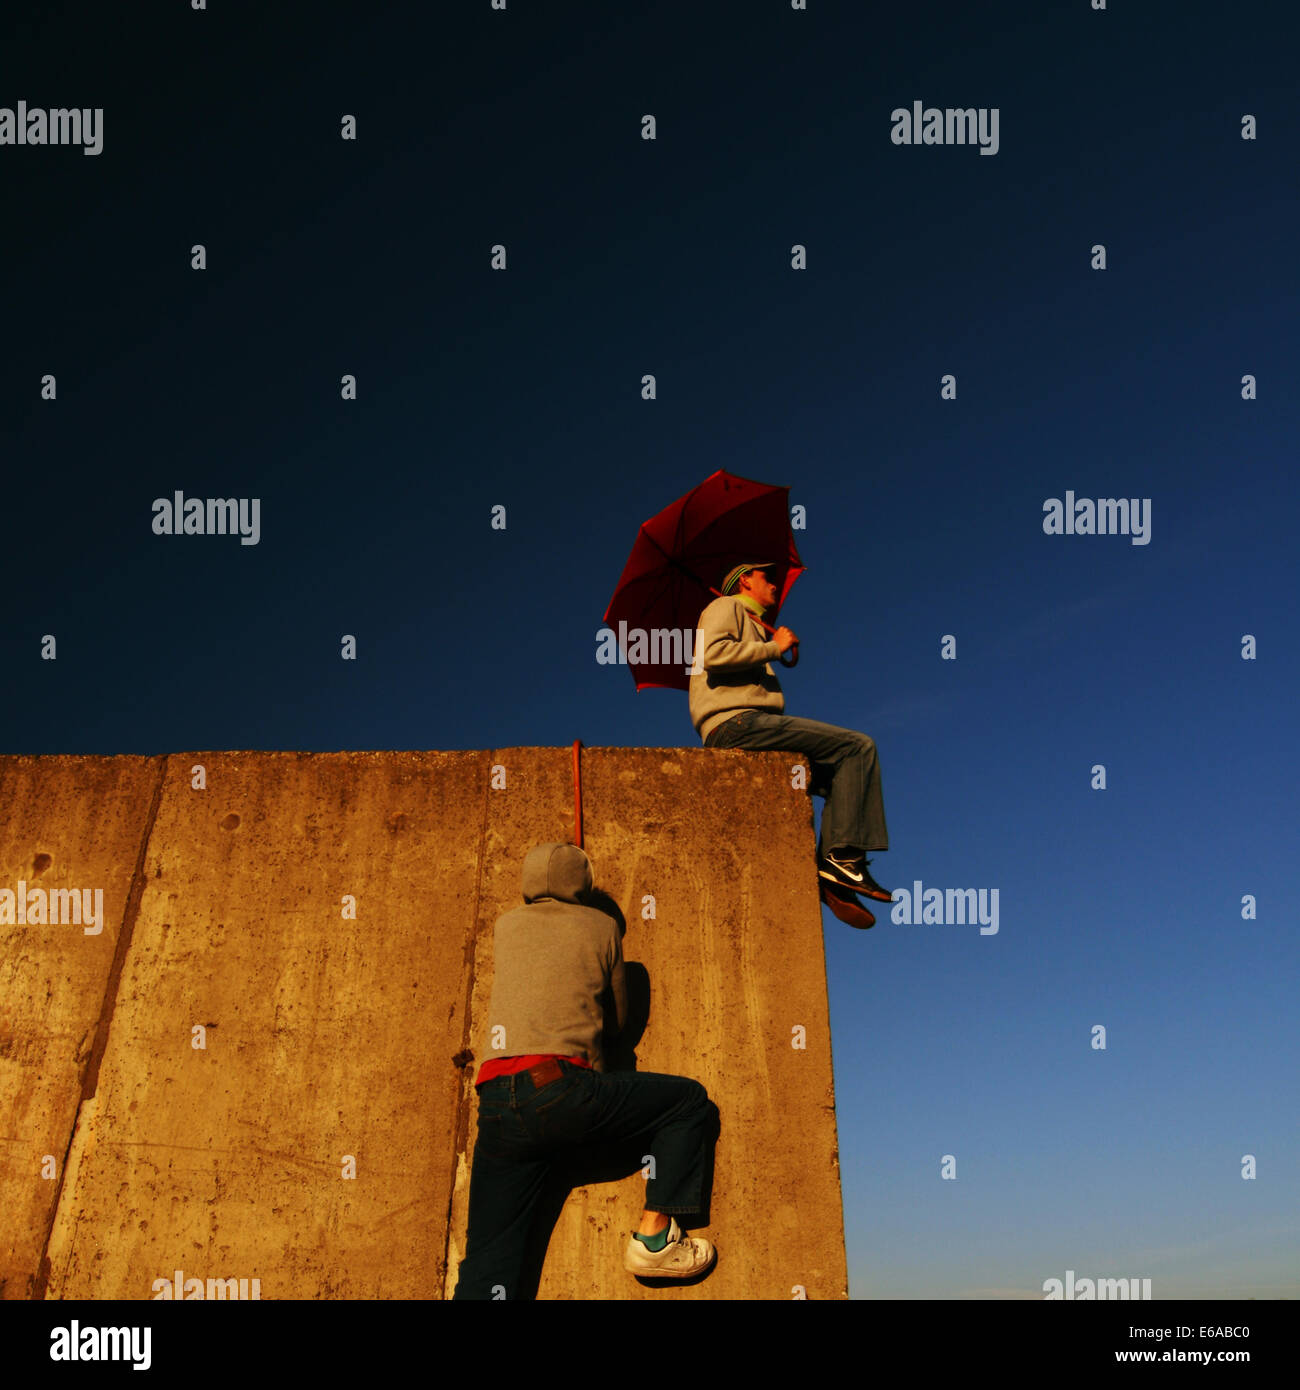 humor,bizarre,wall,climbing,umbrella - Stock Image